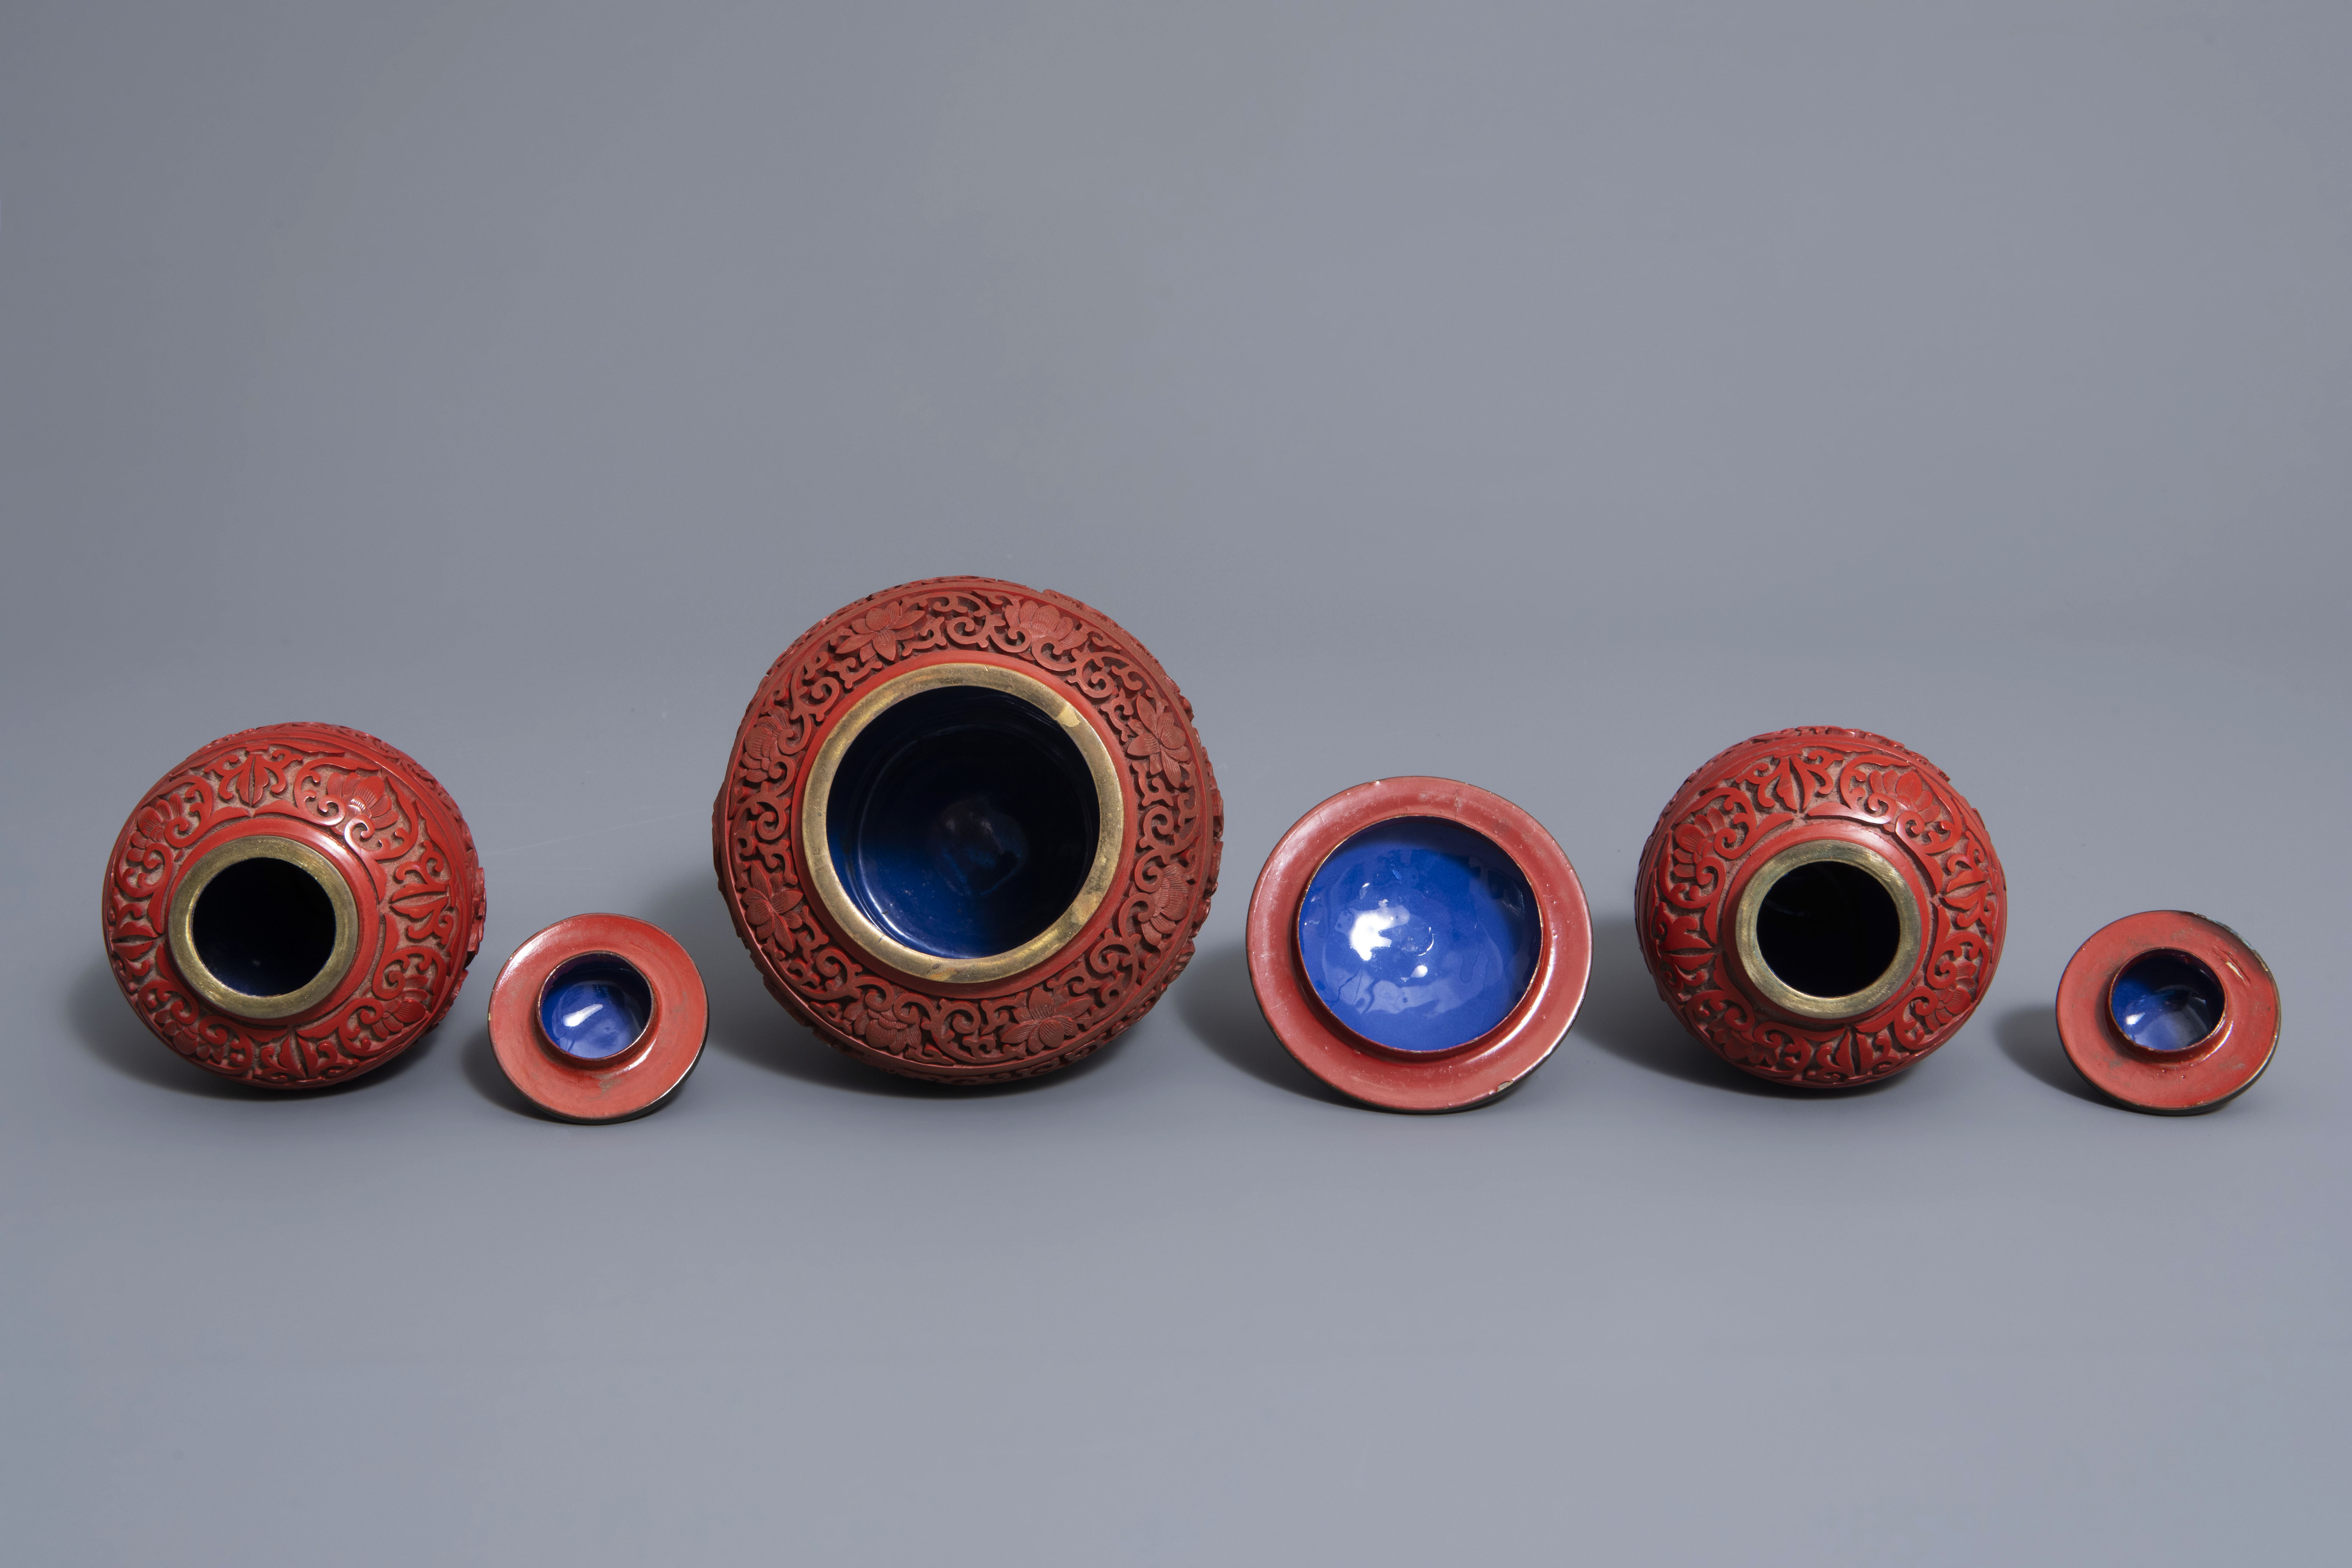 A Chinese tea block, cloisonné teapot, wall vase, bamboo brush pot & 3 red lacquer vases, 20th C. - Image 6 of 16